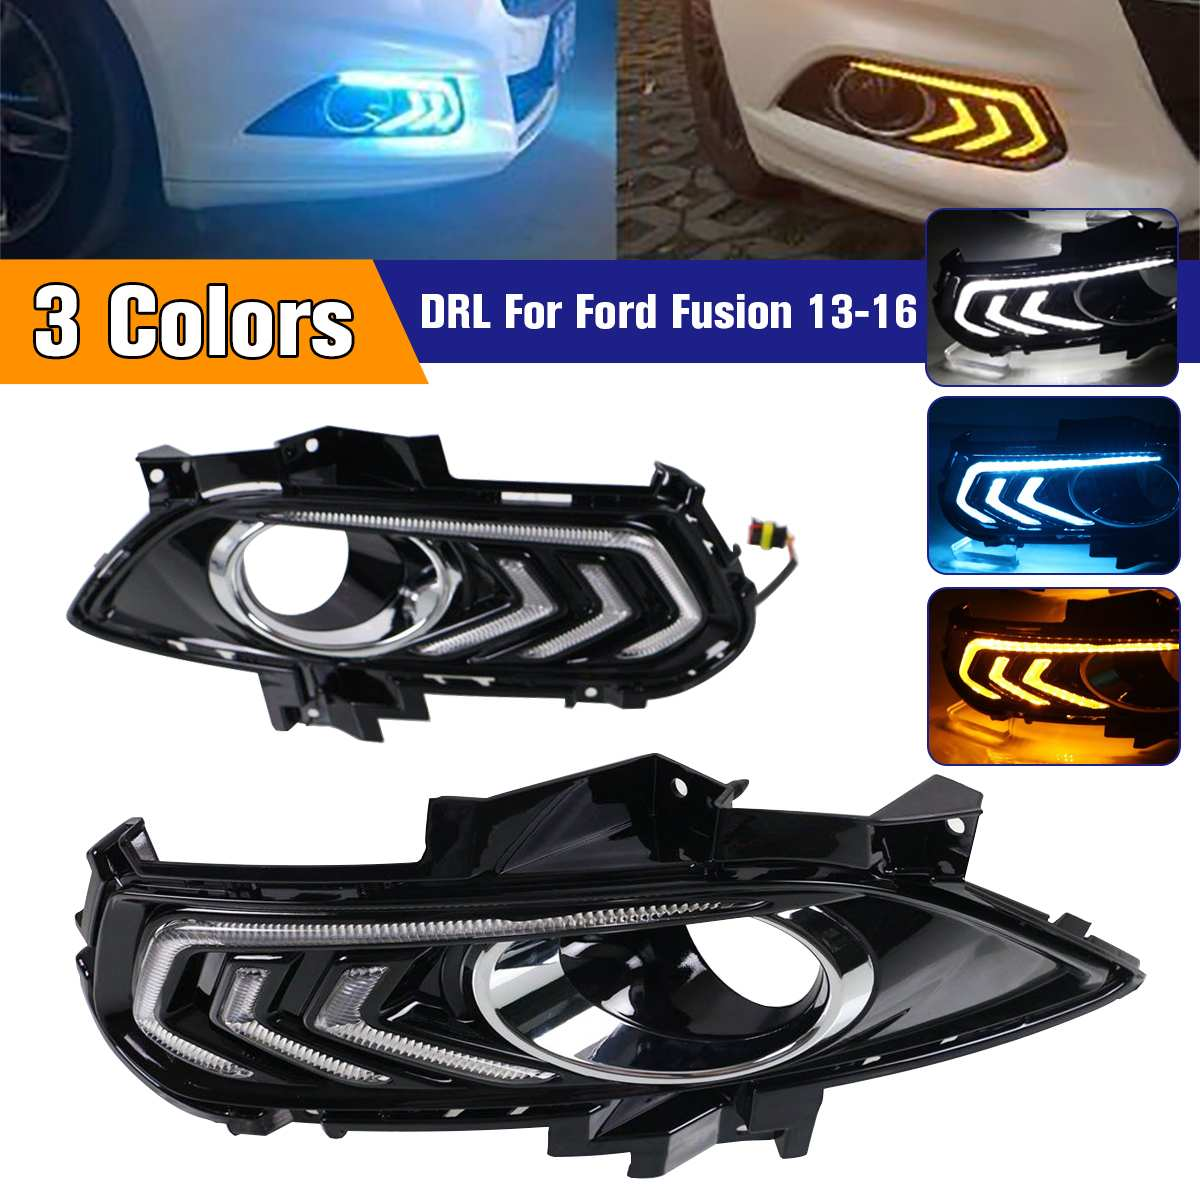 1 Set DRL Daytime Running Lights For Ford for Mondeo Fusion 2013-2016 Fog Lamp Cover With Yellow Turn Signal Night Blue1 Set DRL Daytime Running Lights For Ford for Mondeo Fusion 2013-2016 Fog Lamp Cover With Yellow Turn Signal Night Blue